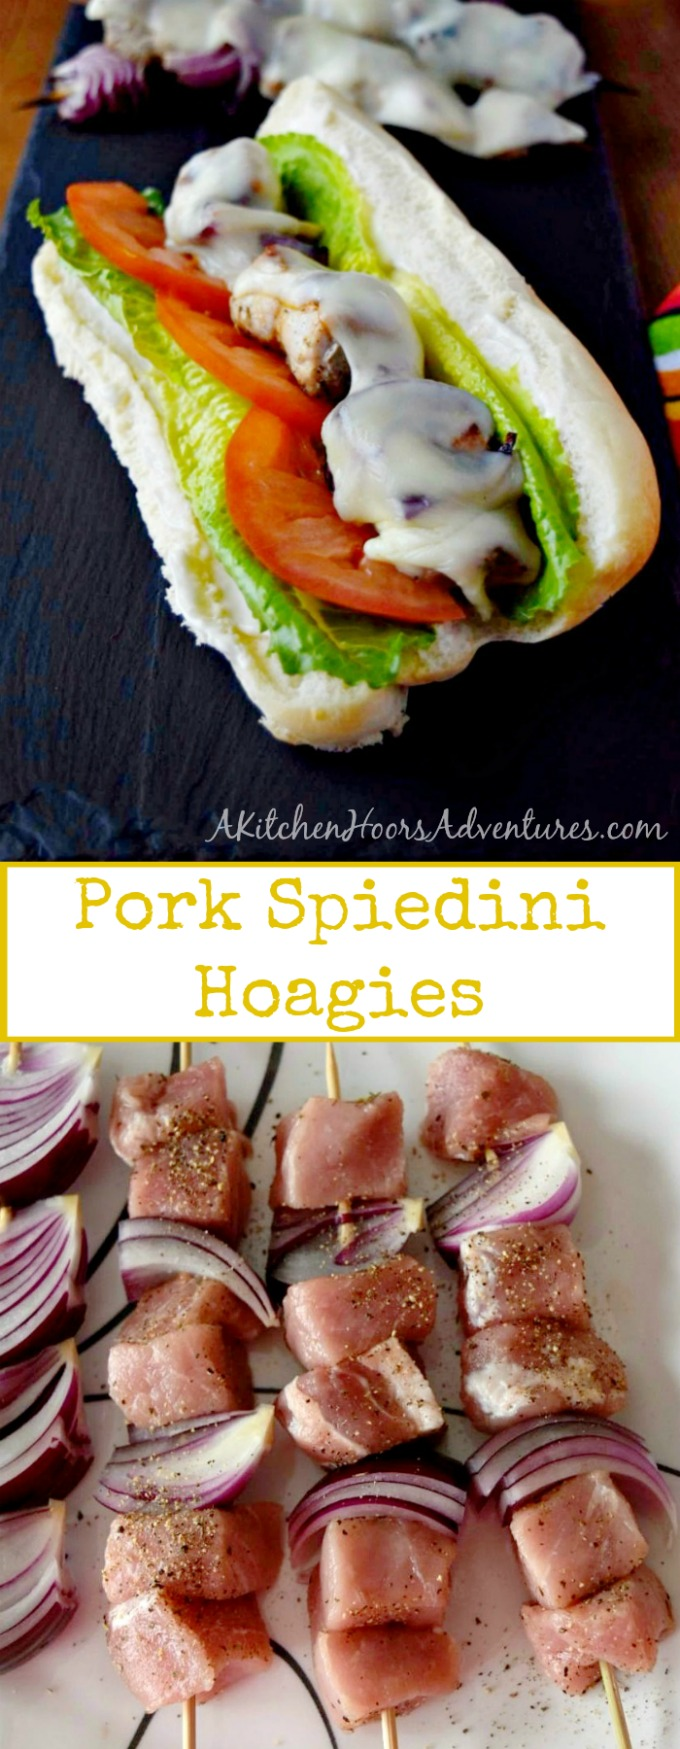 Quick and easy, Pork Spiedini Hoagies assemble in minutes, cook in minutes, and are devoured in seconds! Your family will love how delicious these hoagies are and you'll love how quick they are. #SundaySupper